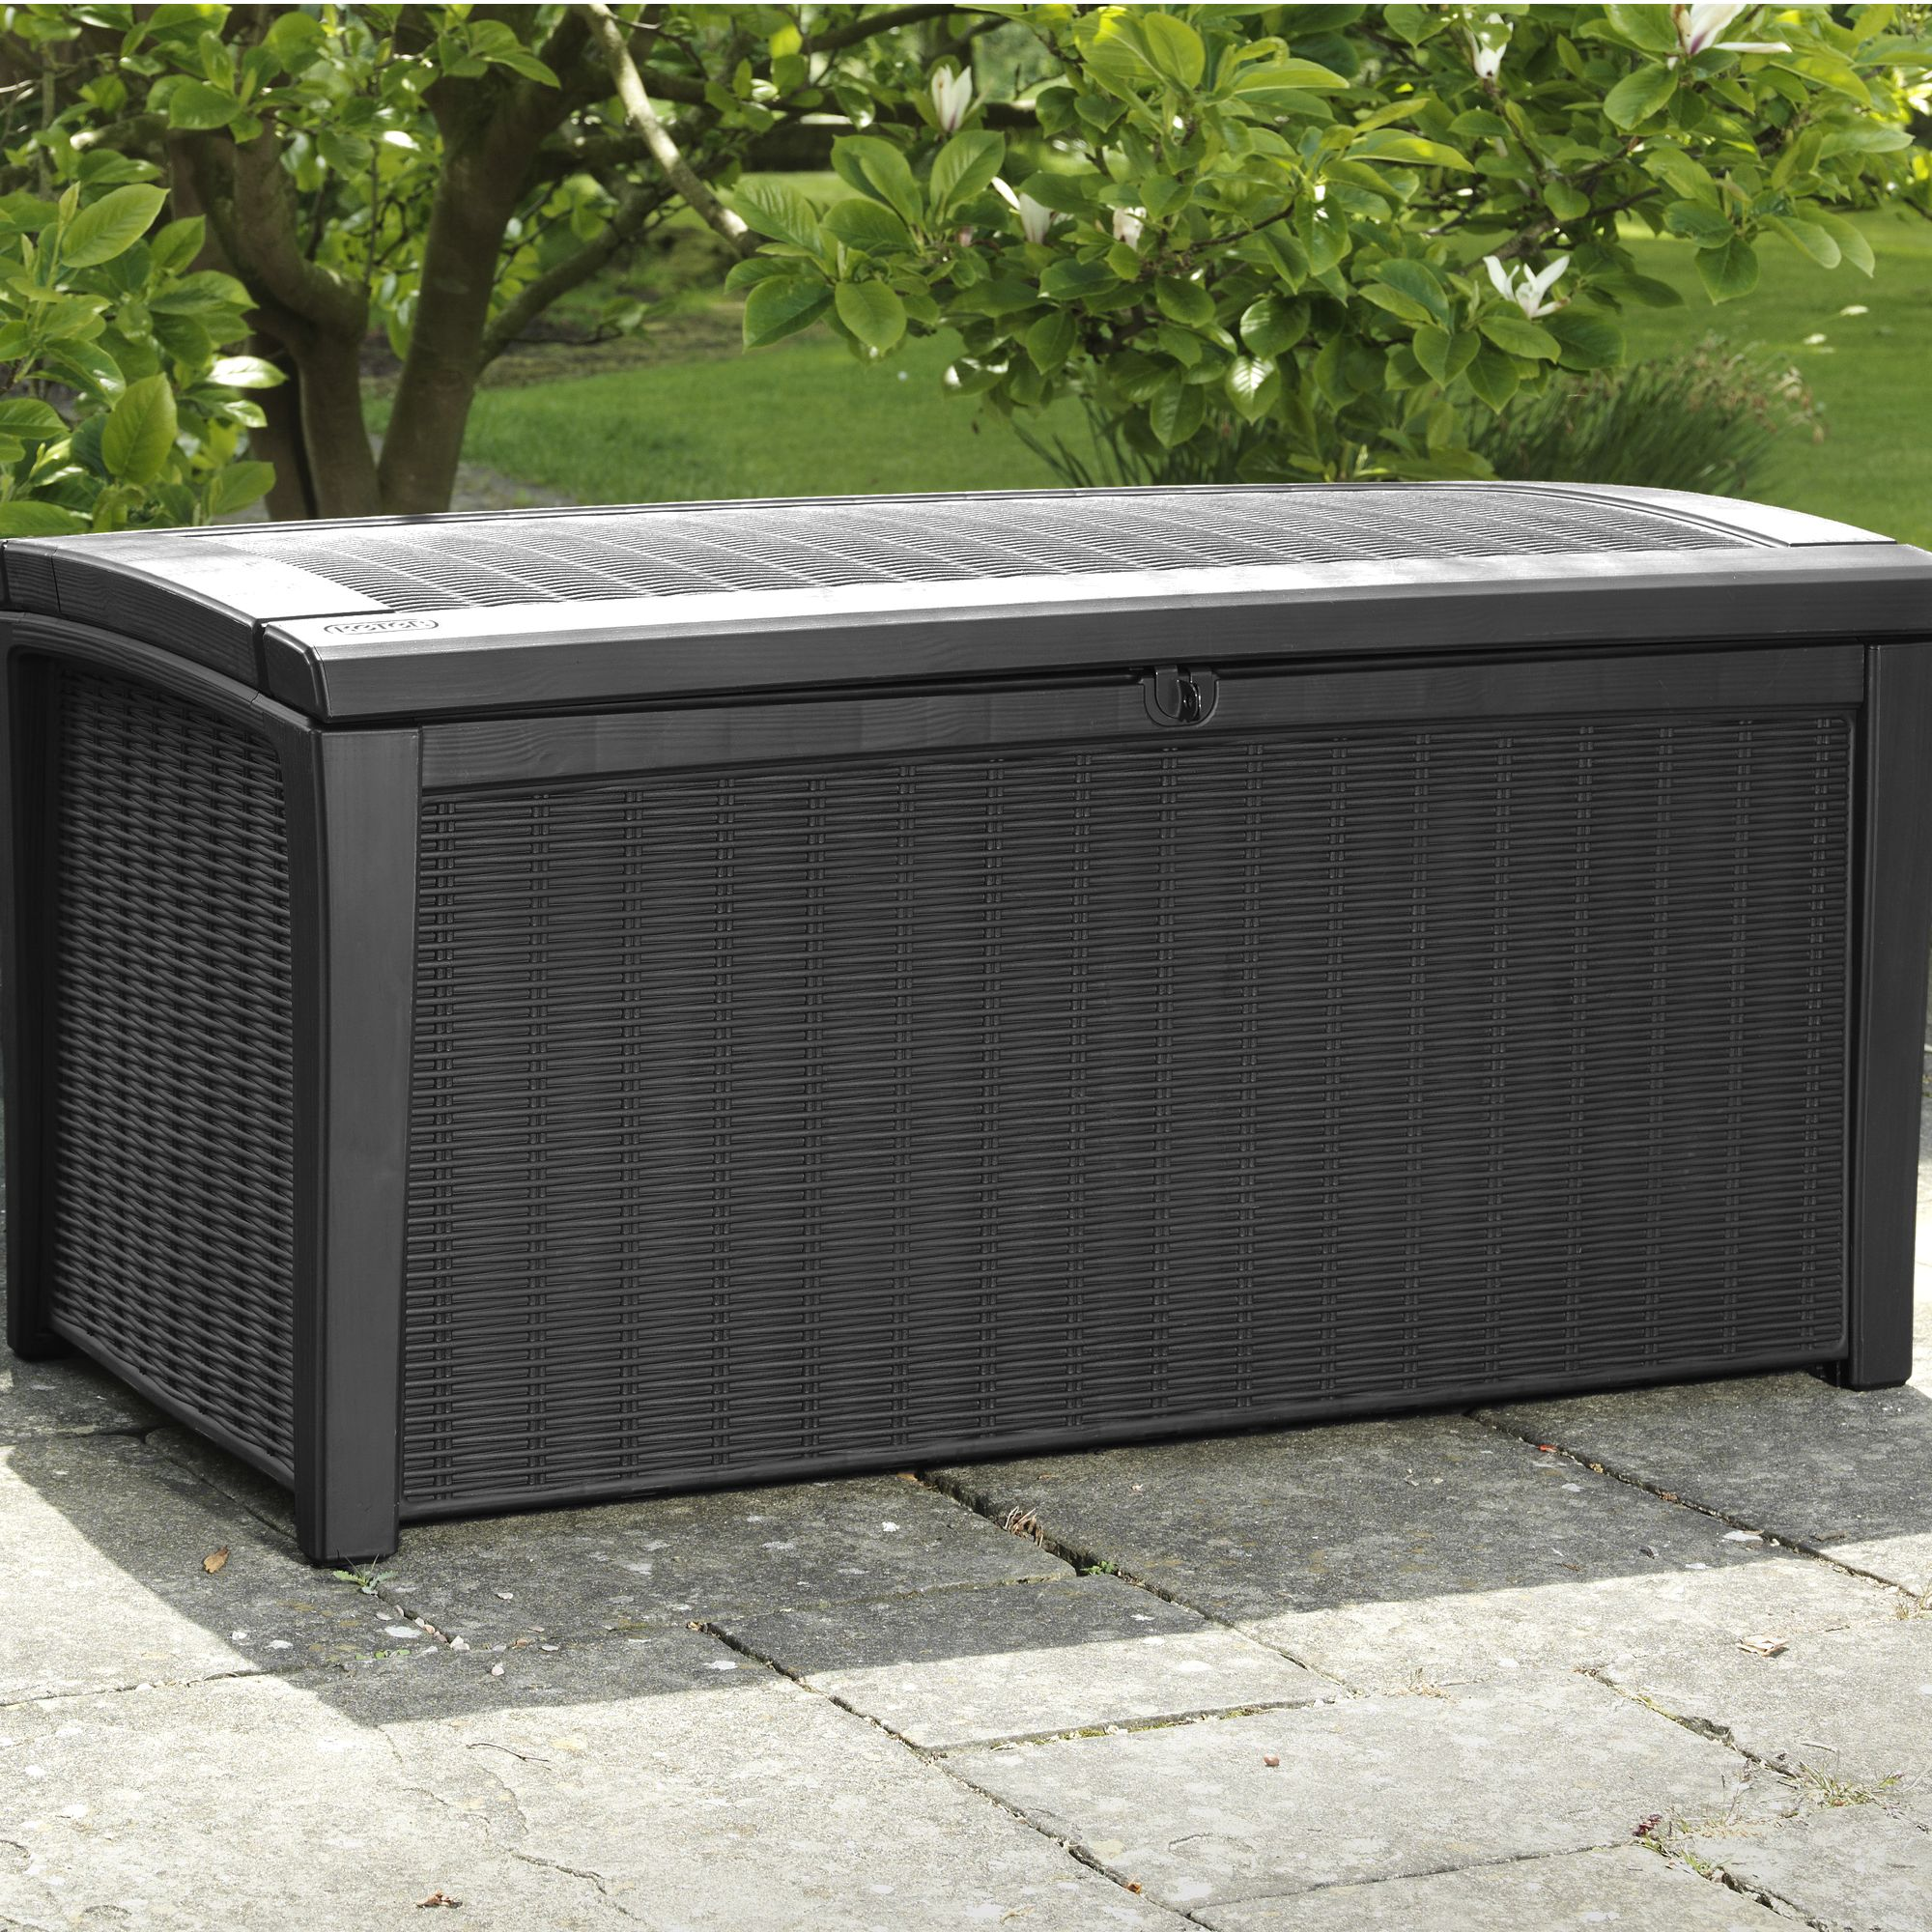 Borneo Rattan Effect Plastic Garden Storage Box Departments Diy